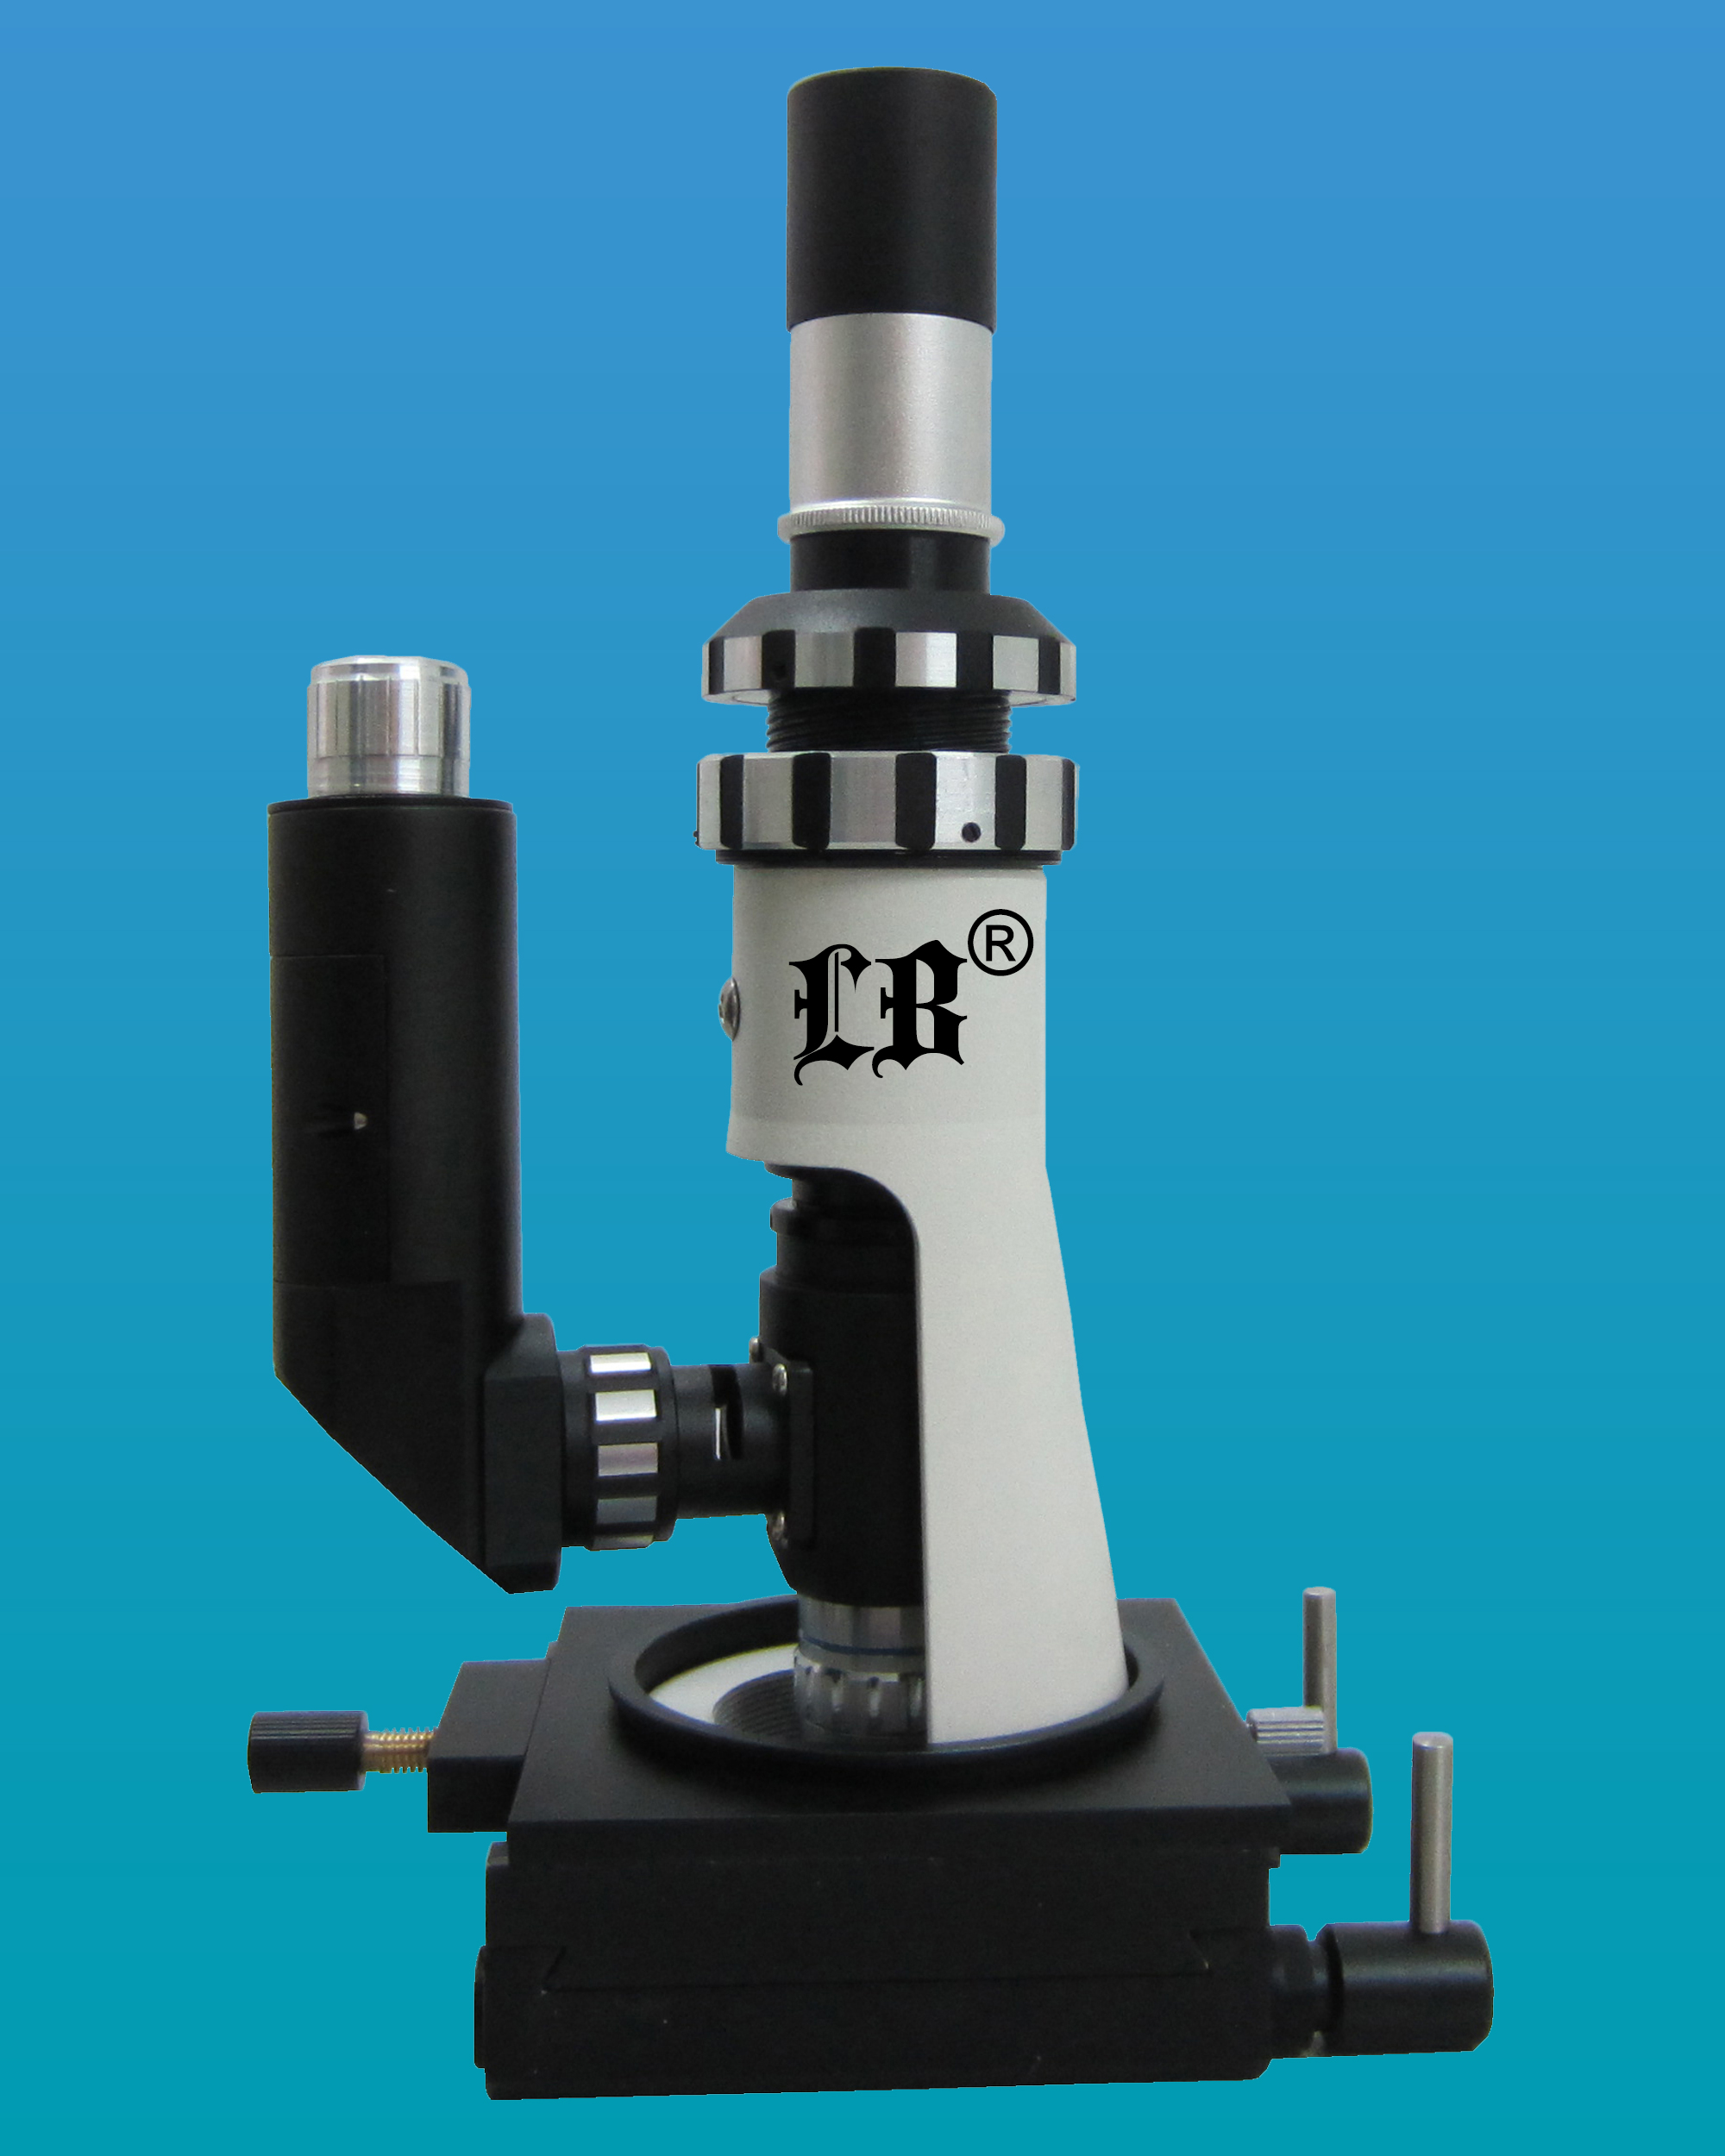 [LB-606] Portable Metallurgical Microscope w/ Magnetic Base, Plan Eyepiece & LED